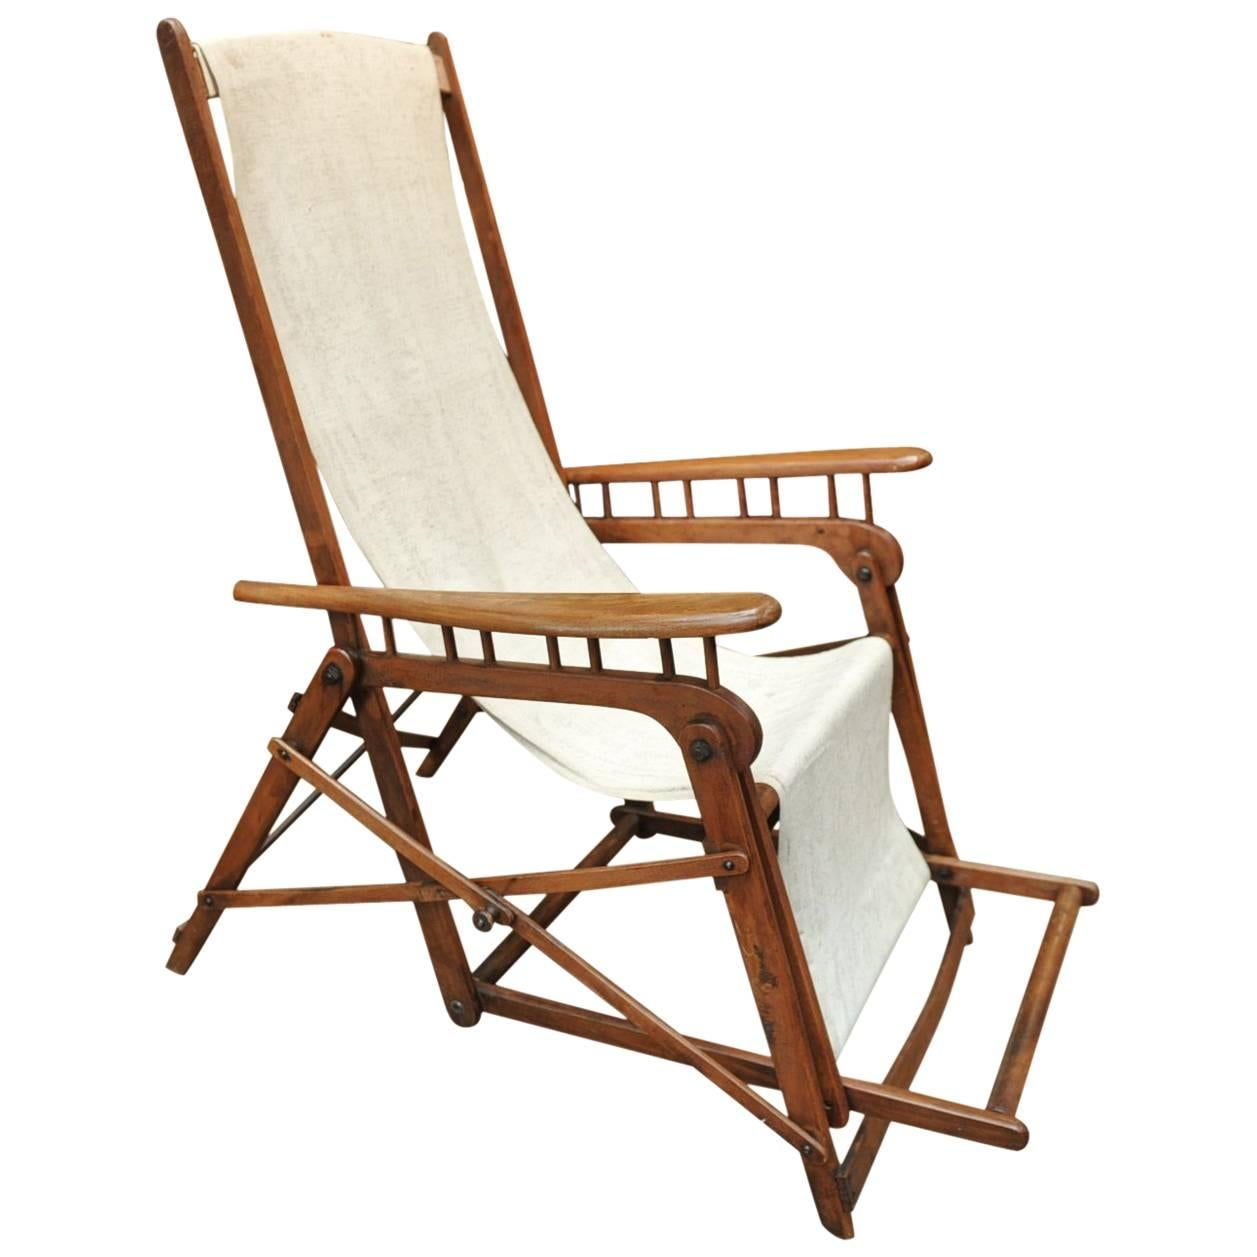 Longue By System Asca French Folding Chair 1920s E92IYWDH